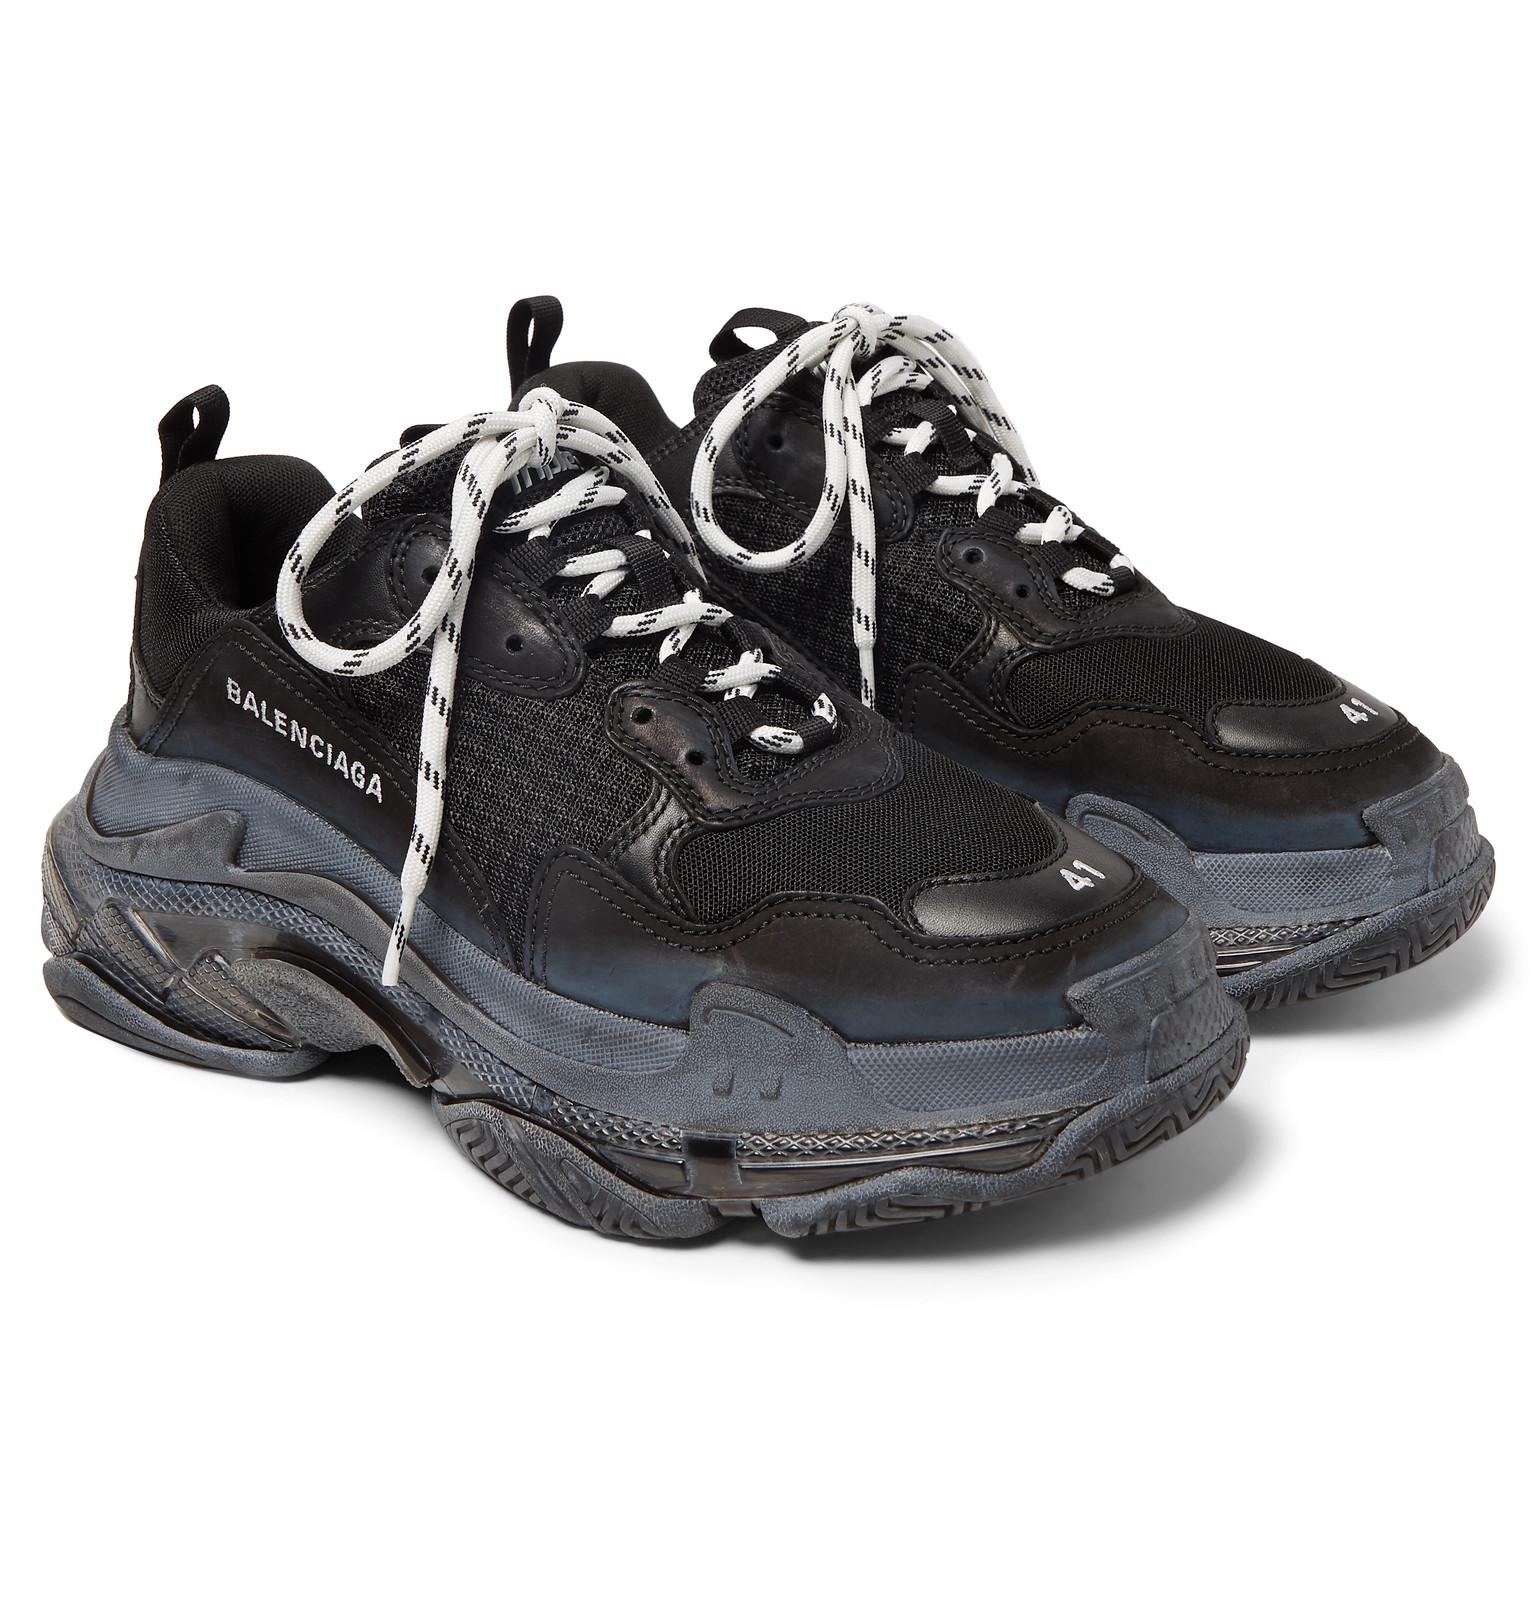 09bfcb466d7fb Balenciaga Black Triple S Clear Sole Mesh, Nubuck And Leather Sneakers for  men. View fullscreen